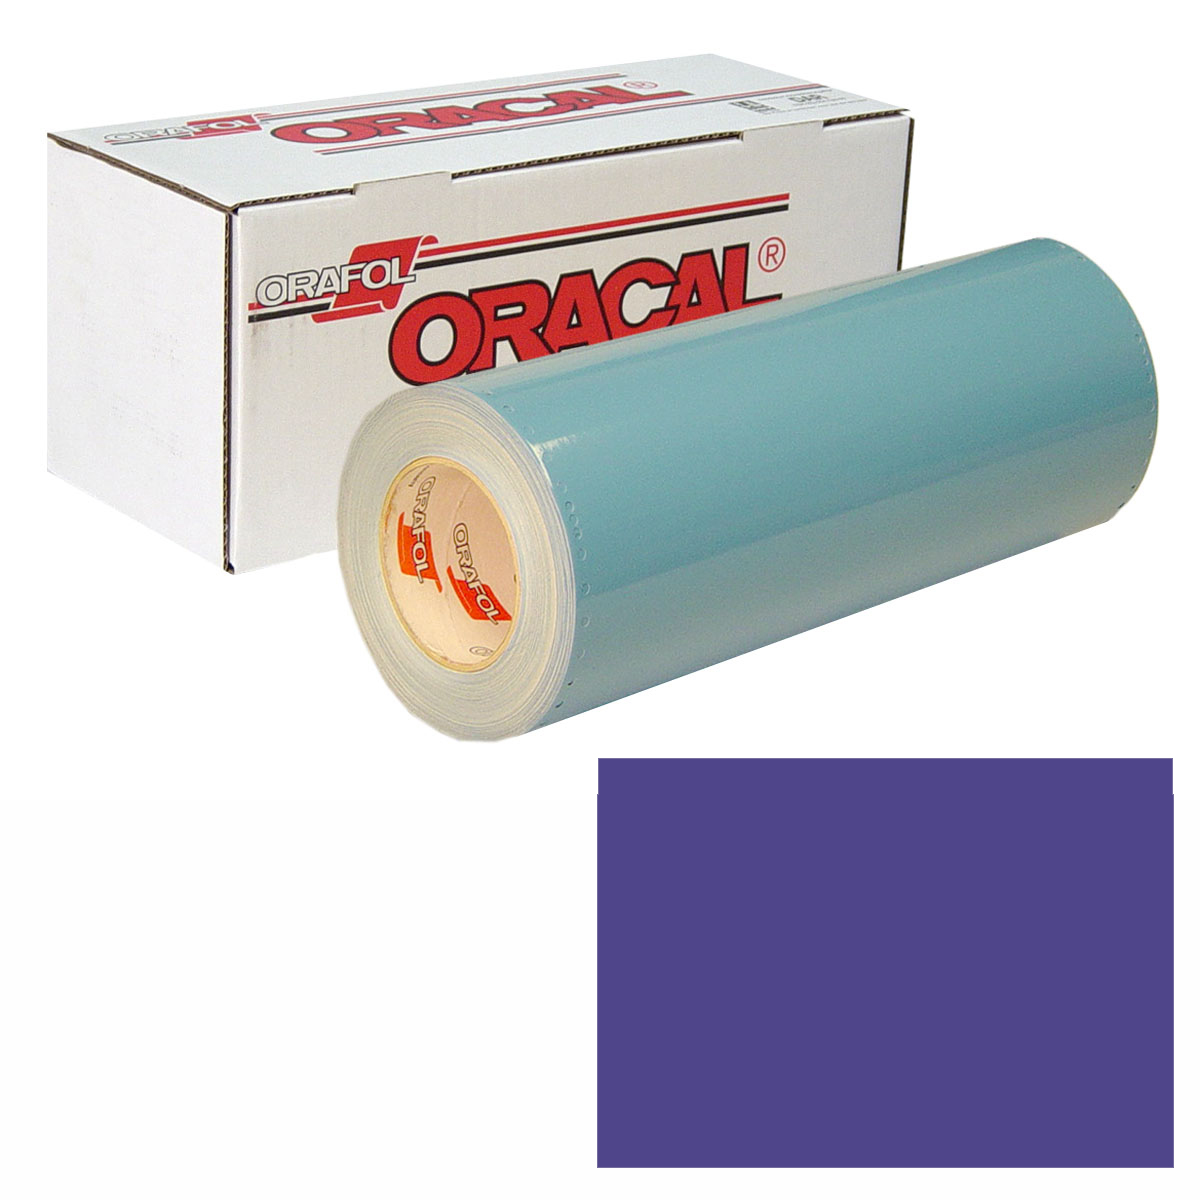 ORACAL 751 15In X 10Yd 518 Steel Blue